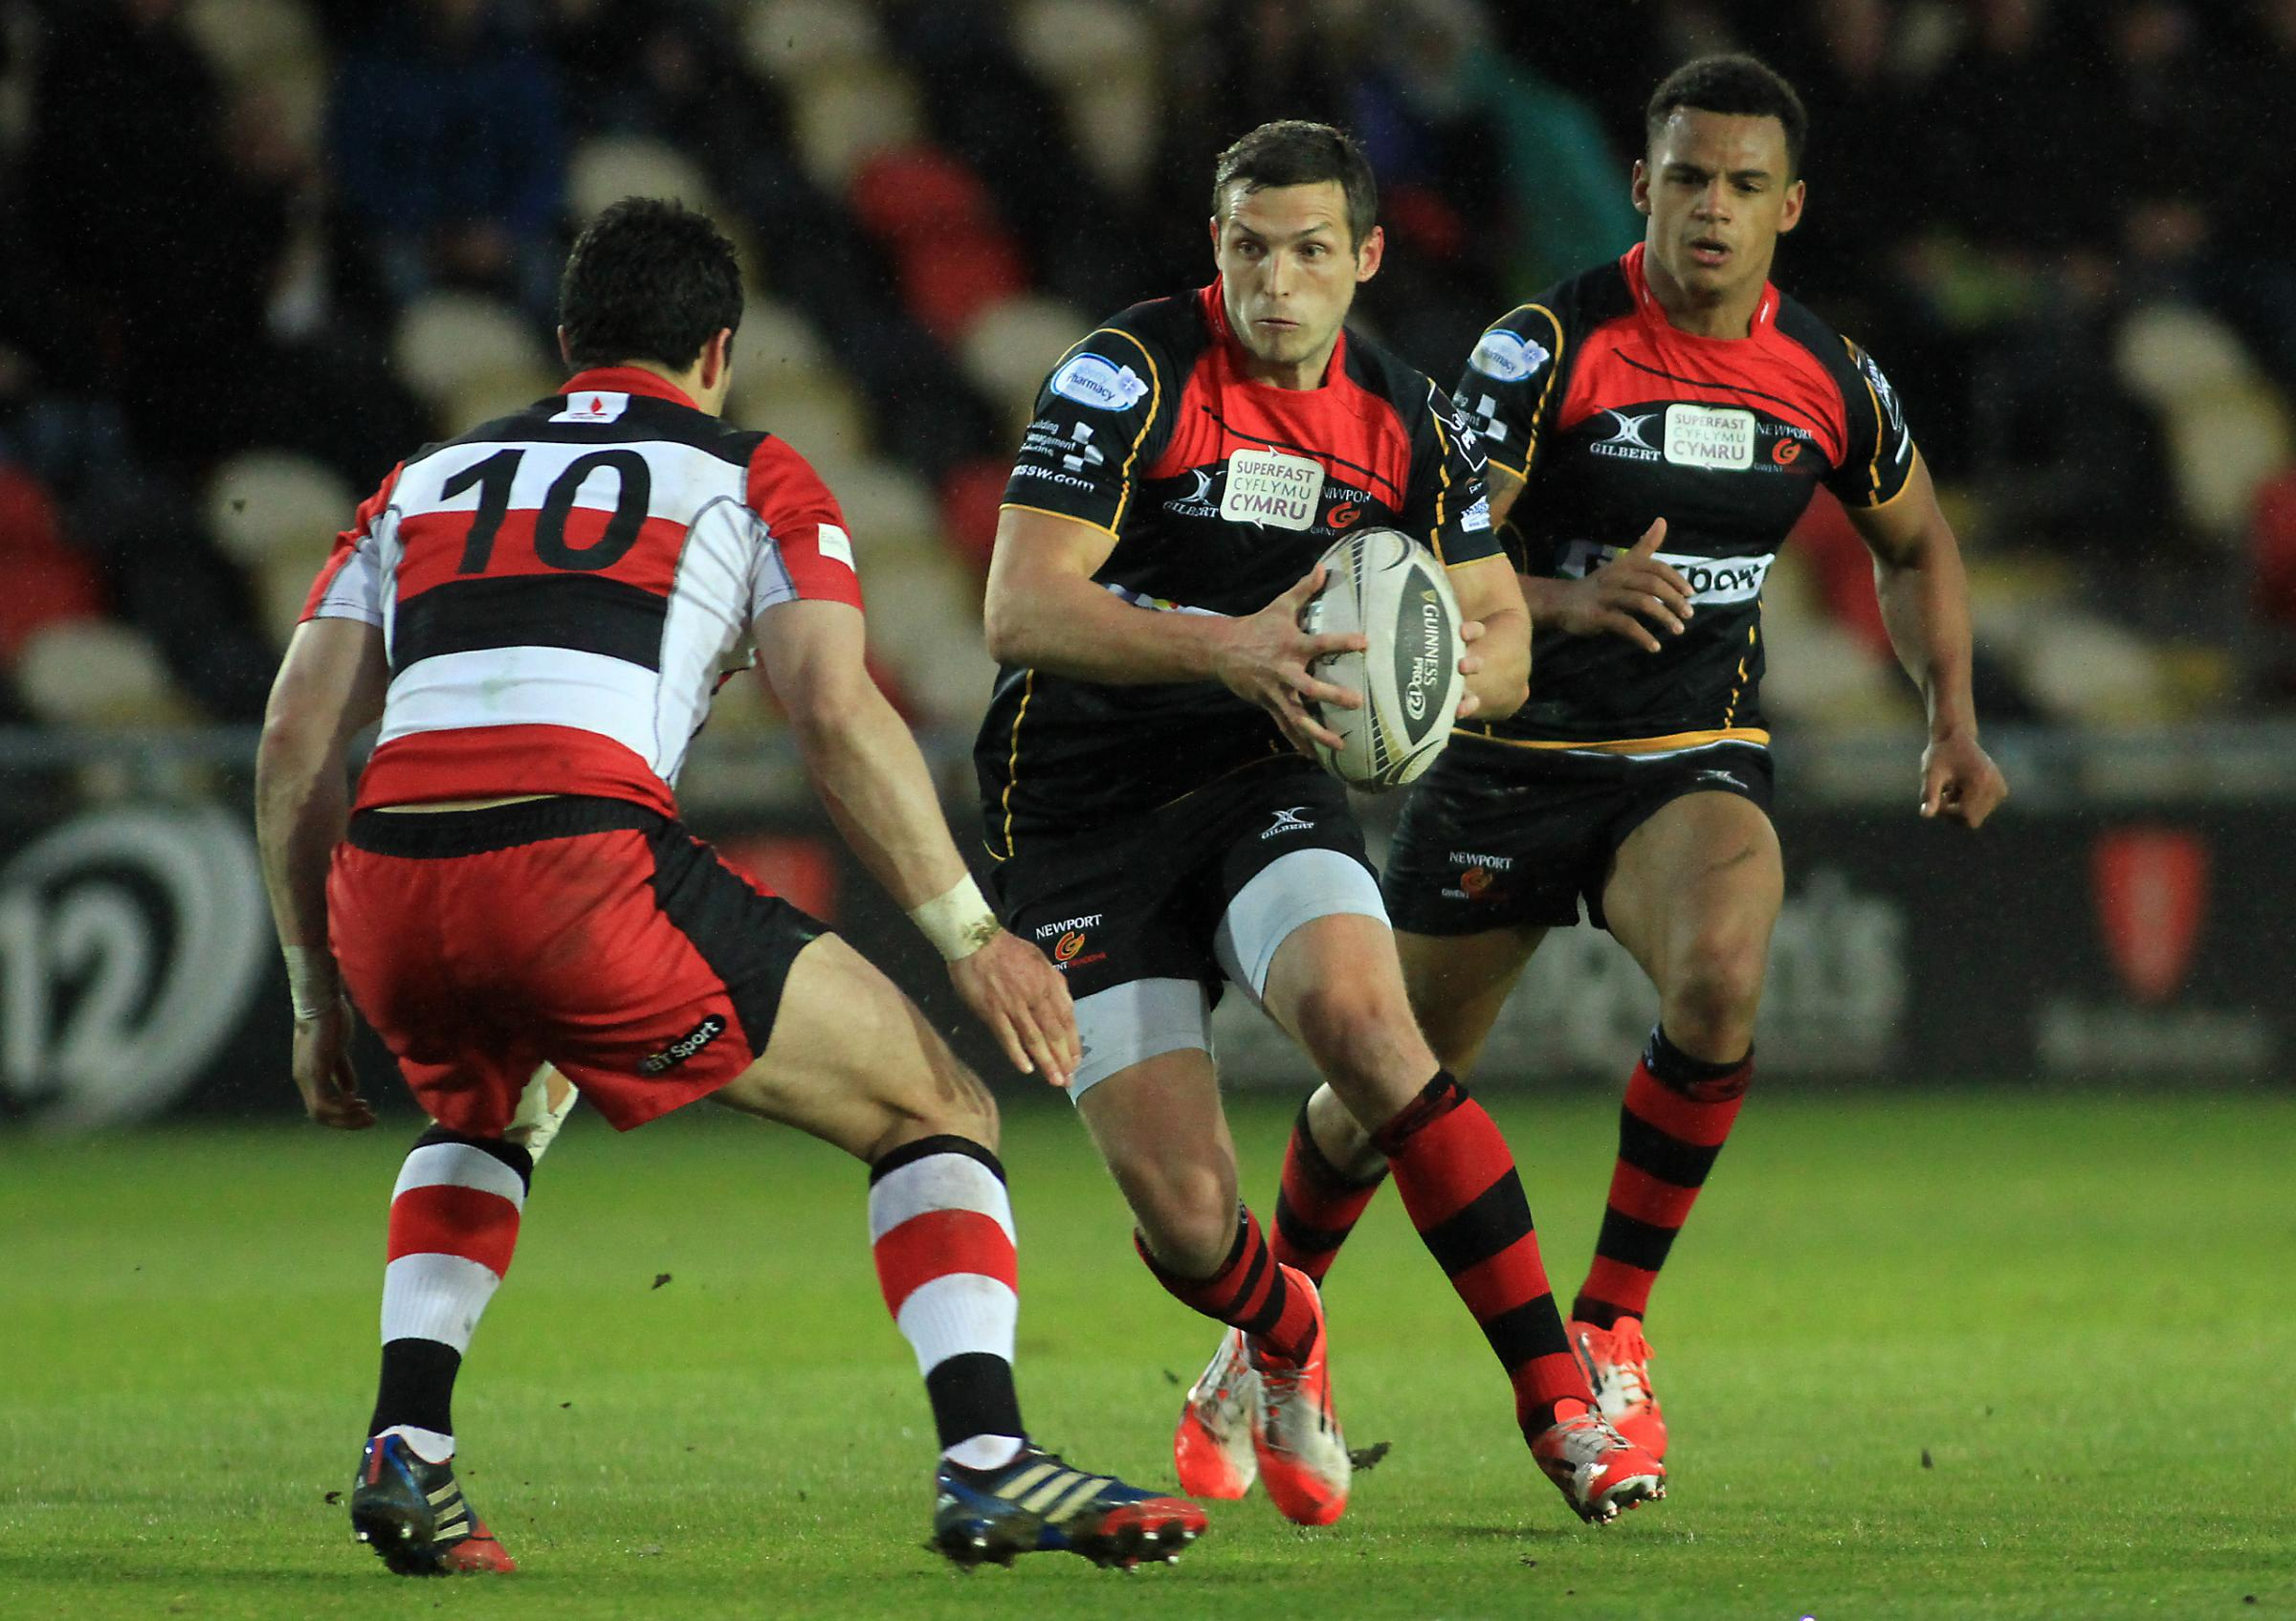 SCOTLAND MOVE: Jason Tovey, pictured playing for the Dragons against Edinburgh, has moved north